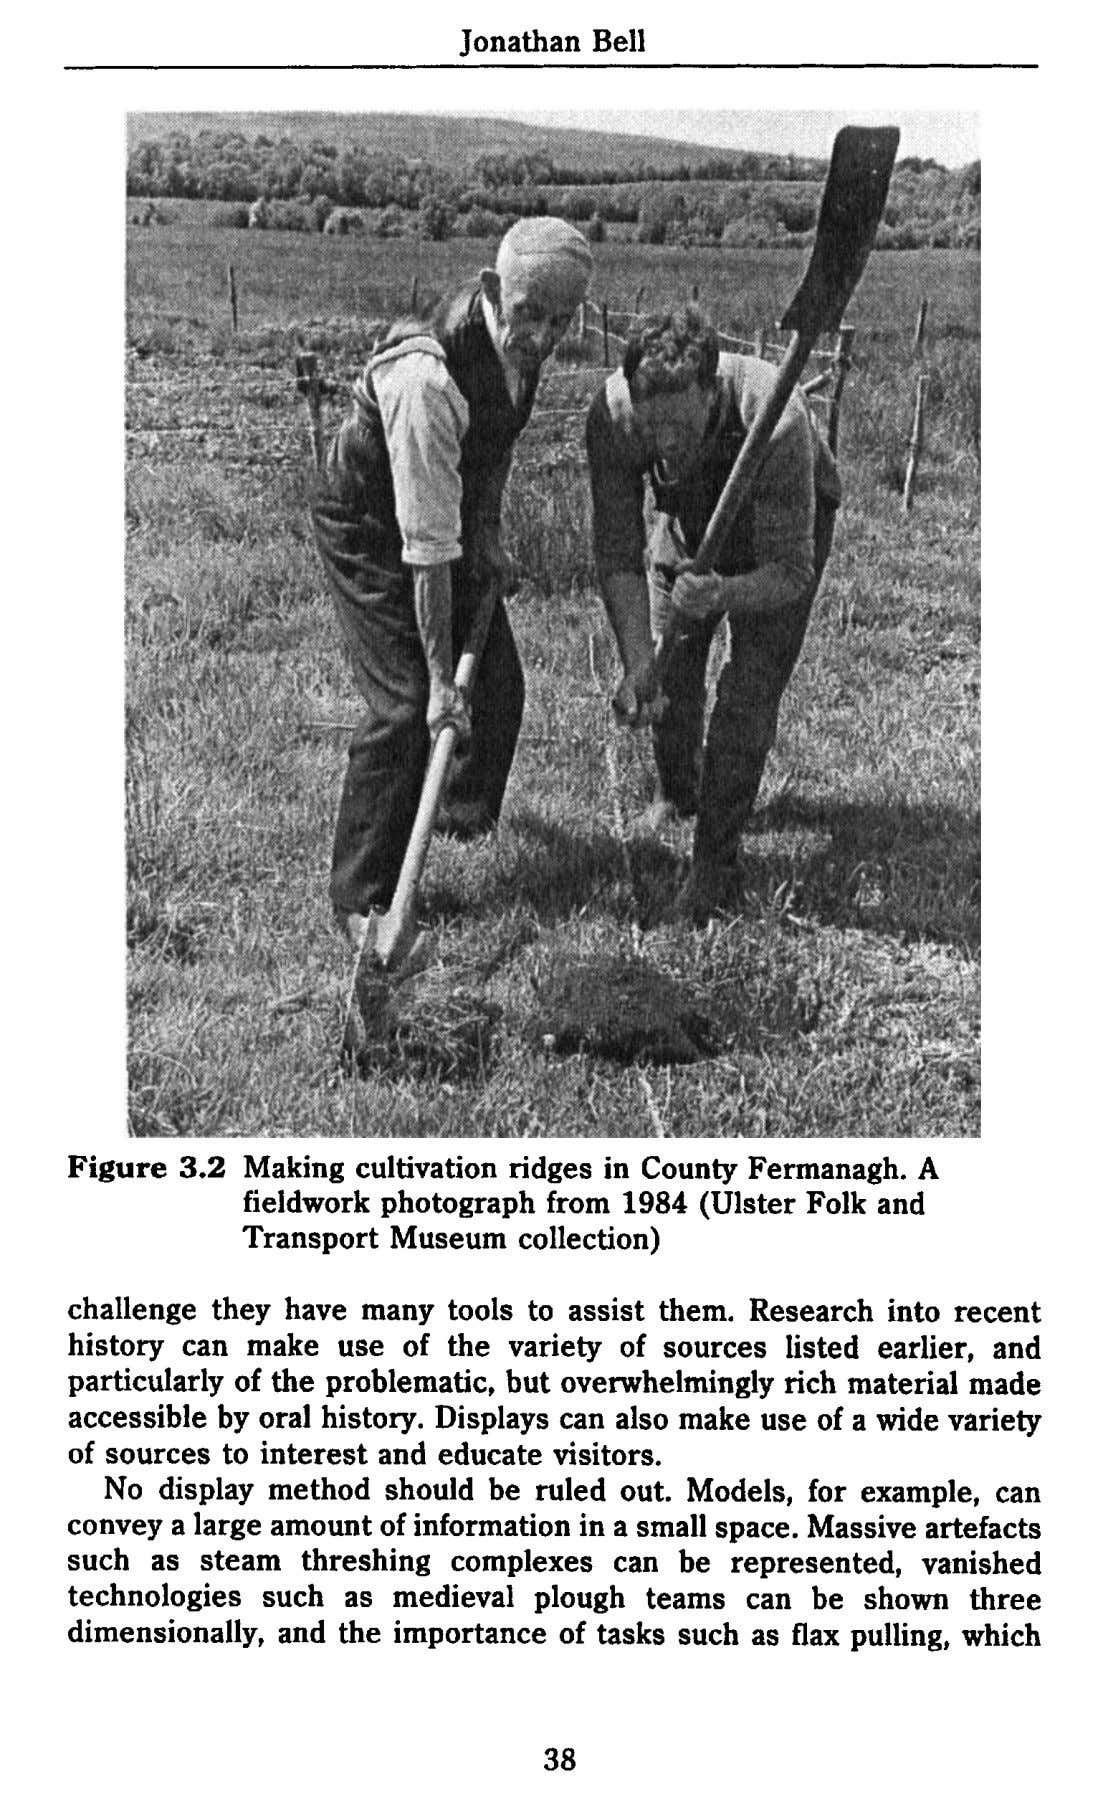 Jonathan Bell Figure 3.2 Making cultivation ridges in County Fermanagh. A fieldwork photograph from 1984